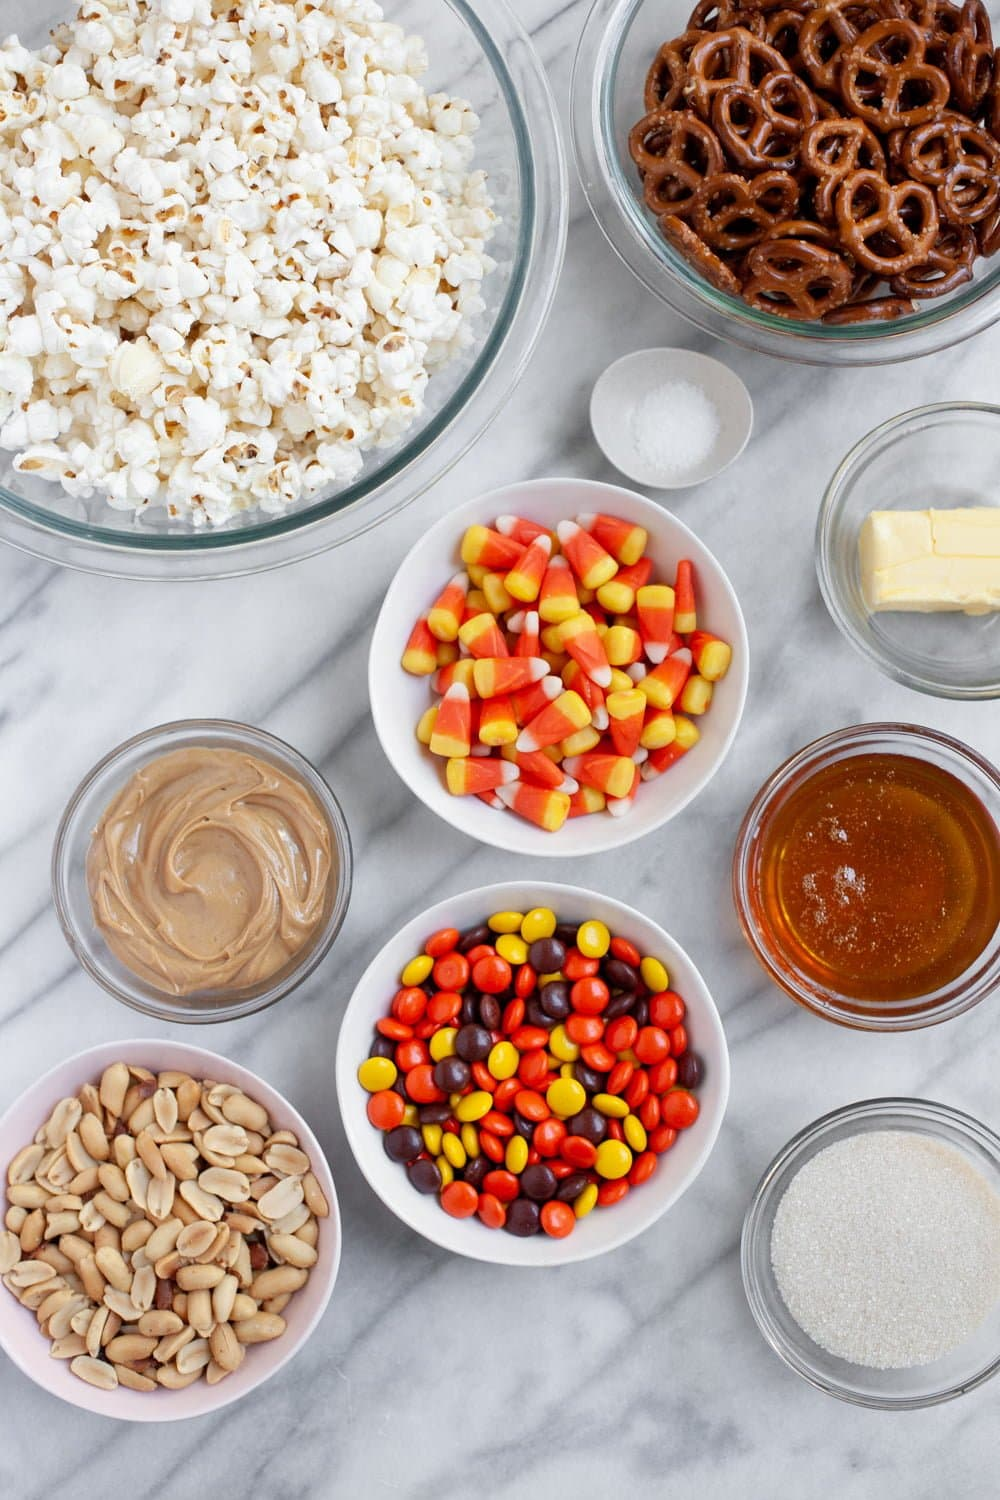 Ingredients for Peanut Butter Monster Munch Halloween Party Mix in individual bowls - popcorn, peanut butter, Reese's Pieces, candy corn